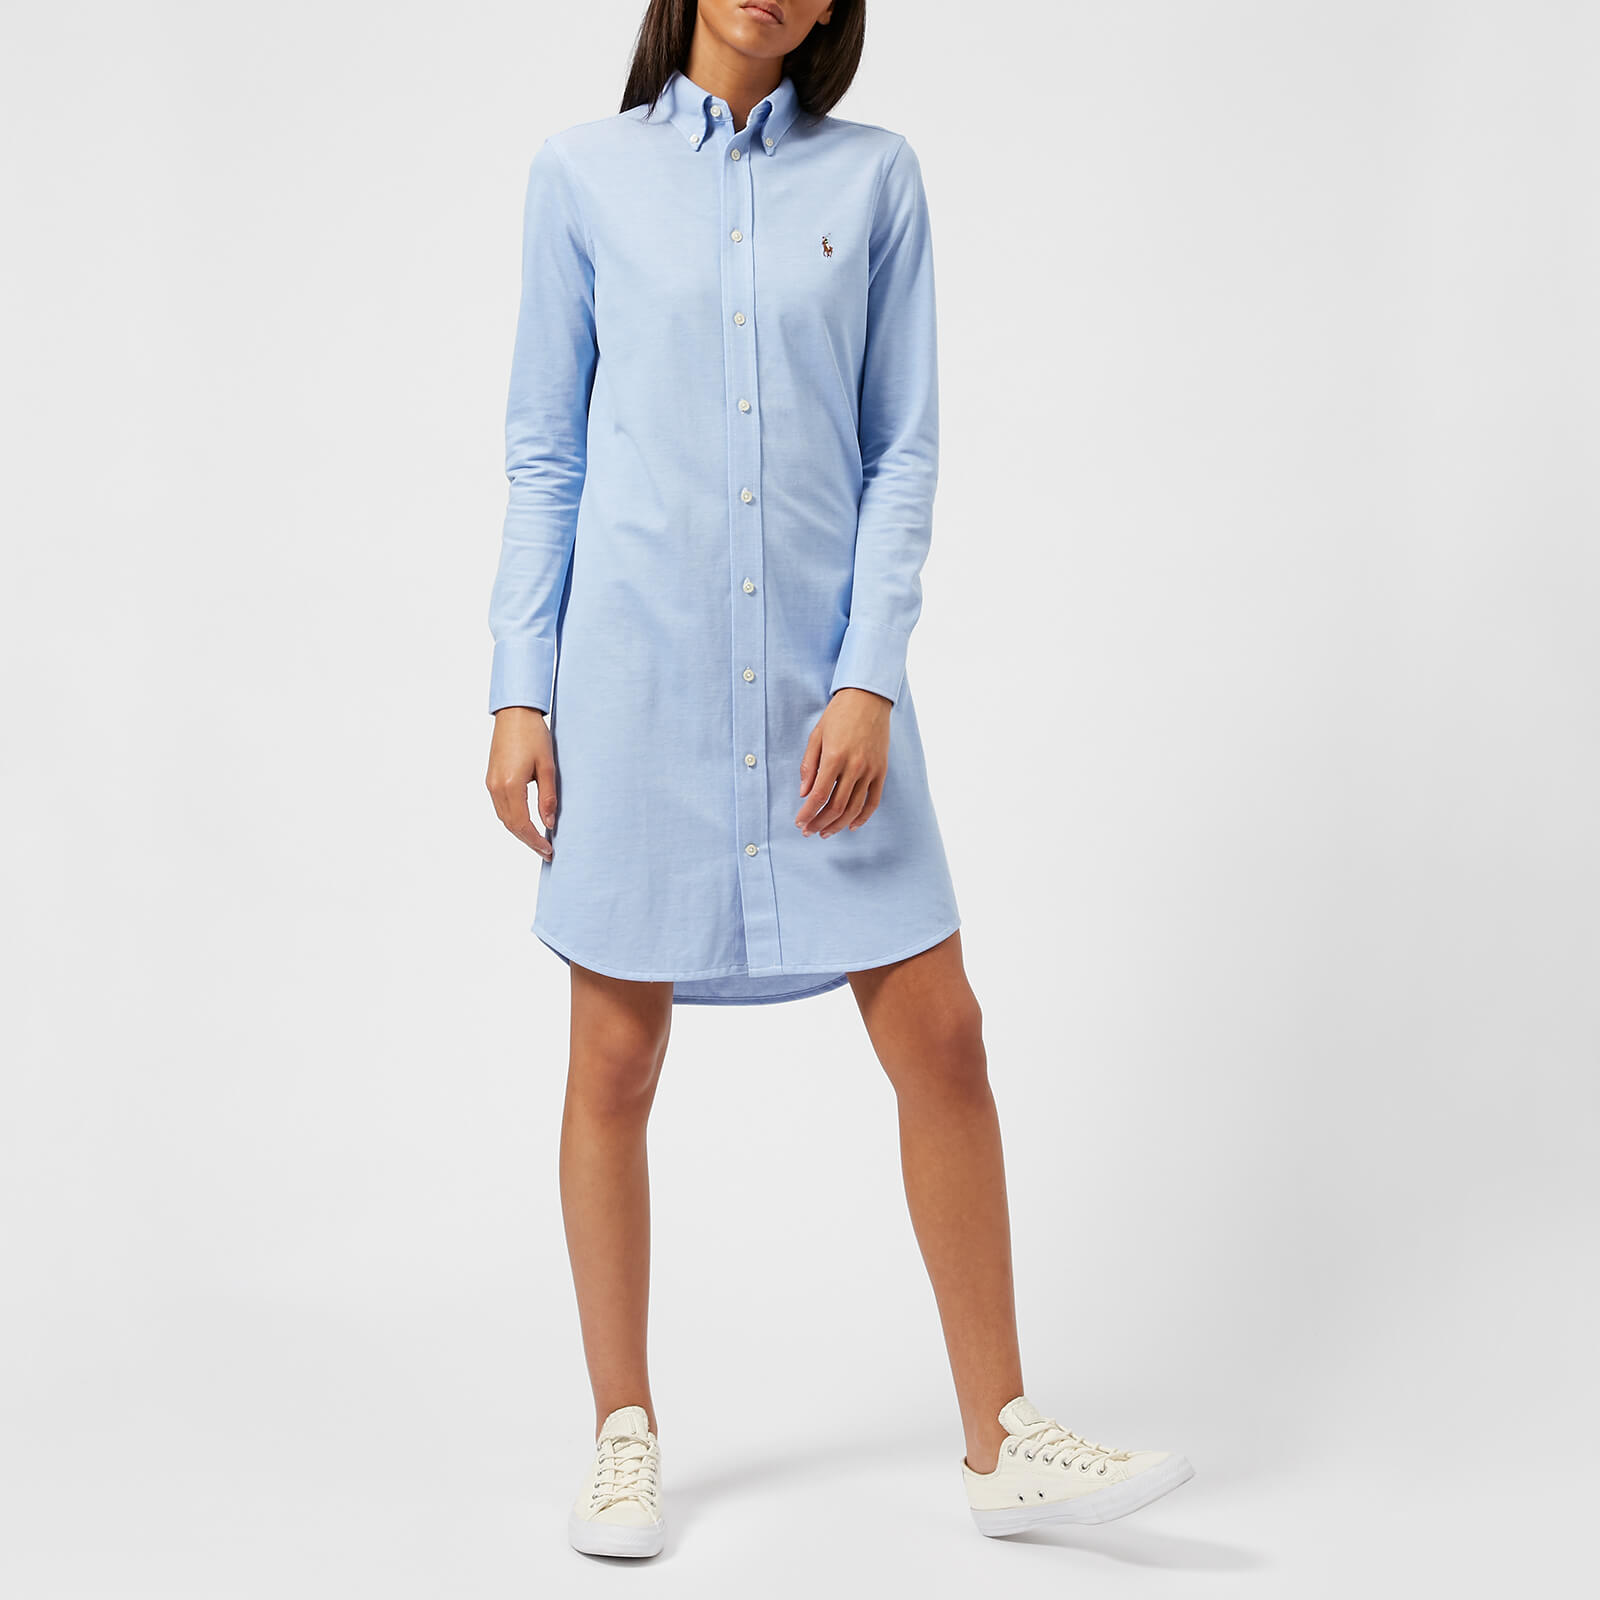 8b8512d862711 Polo Ralph Lauren Women s Oxford Shirt Dress - Blue - Free UK Delivery over  £50